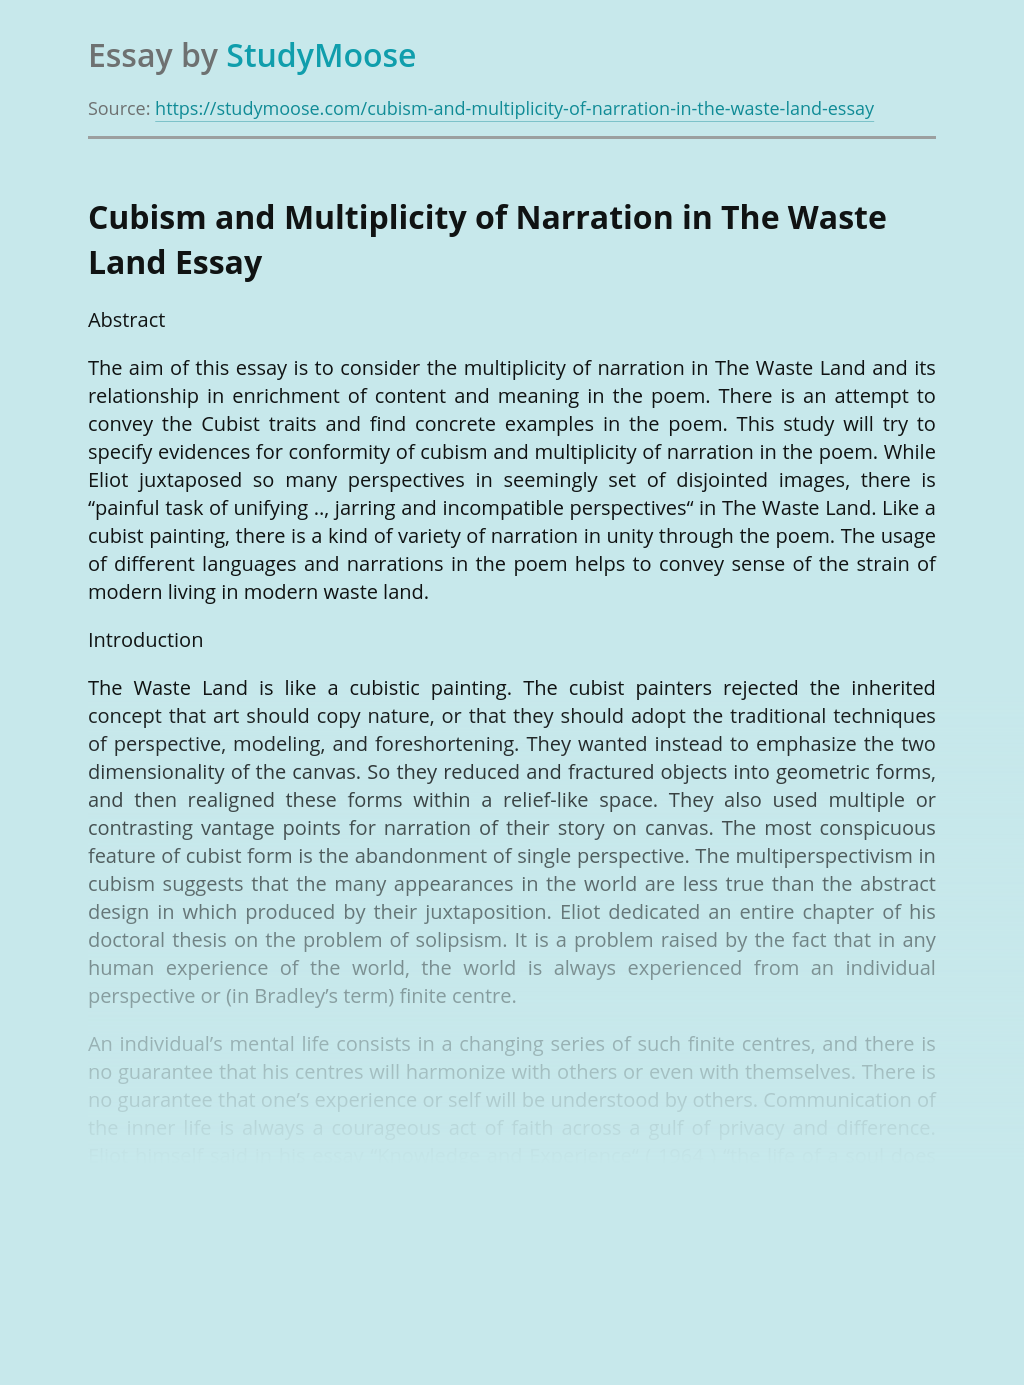 Cubism and Multiplicity of Narration in The Waste Land